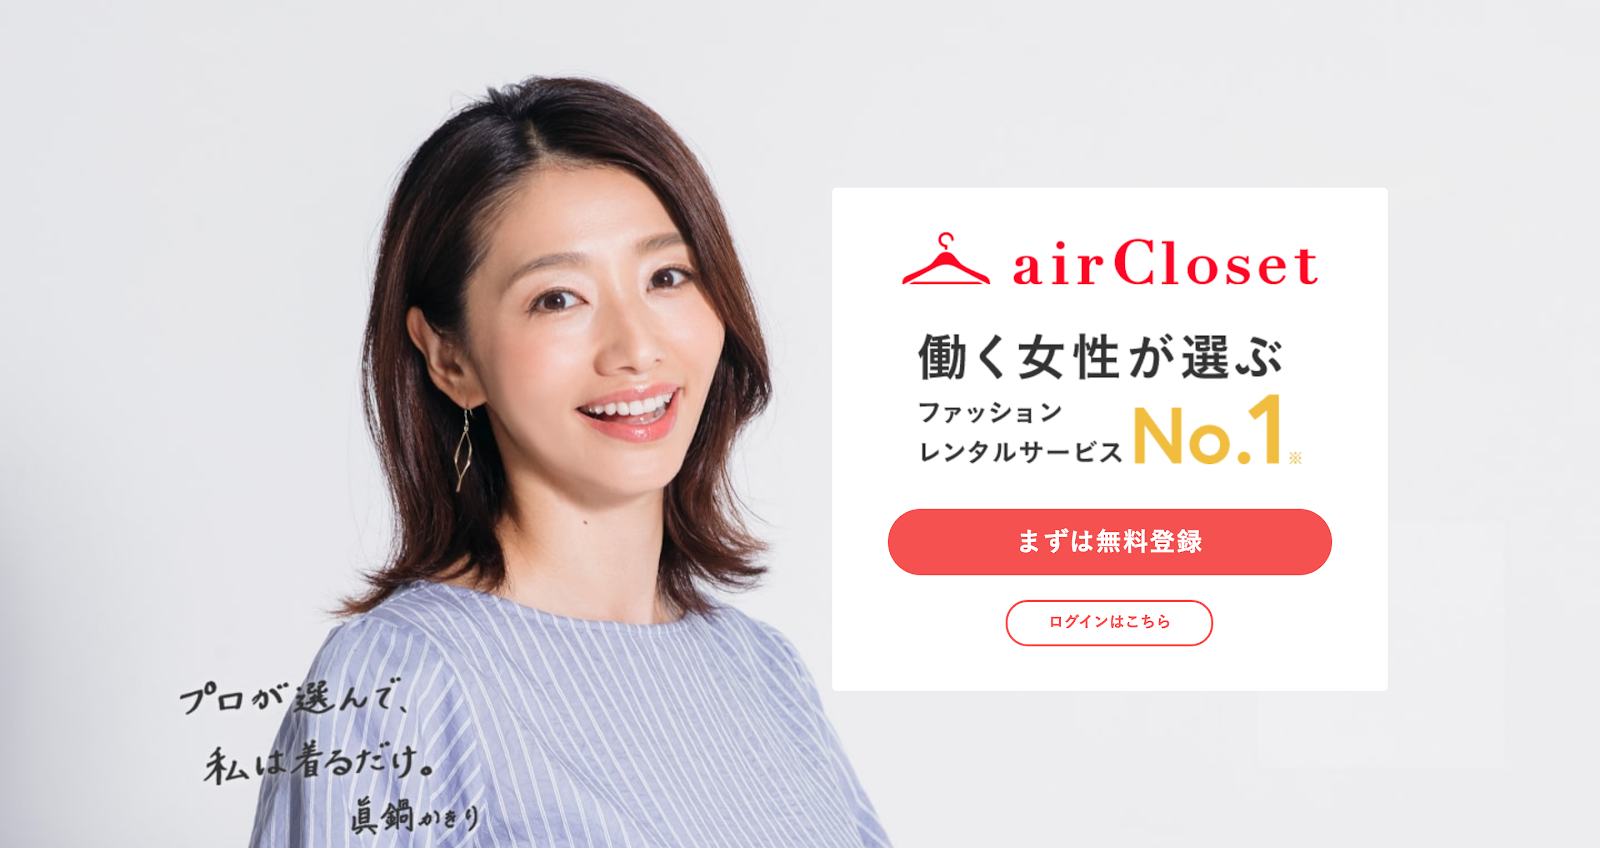 airCloset homepage - Example of subscription service